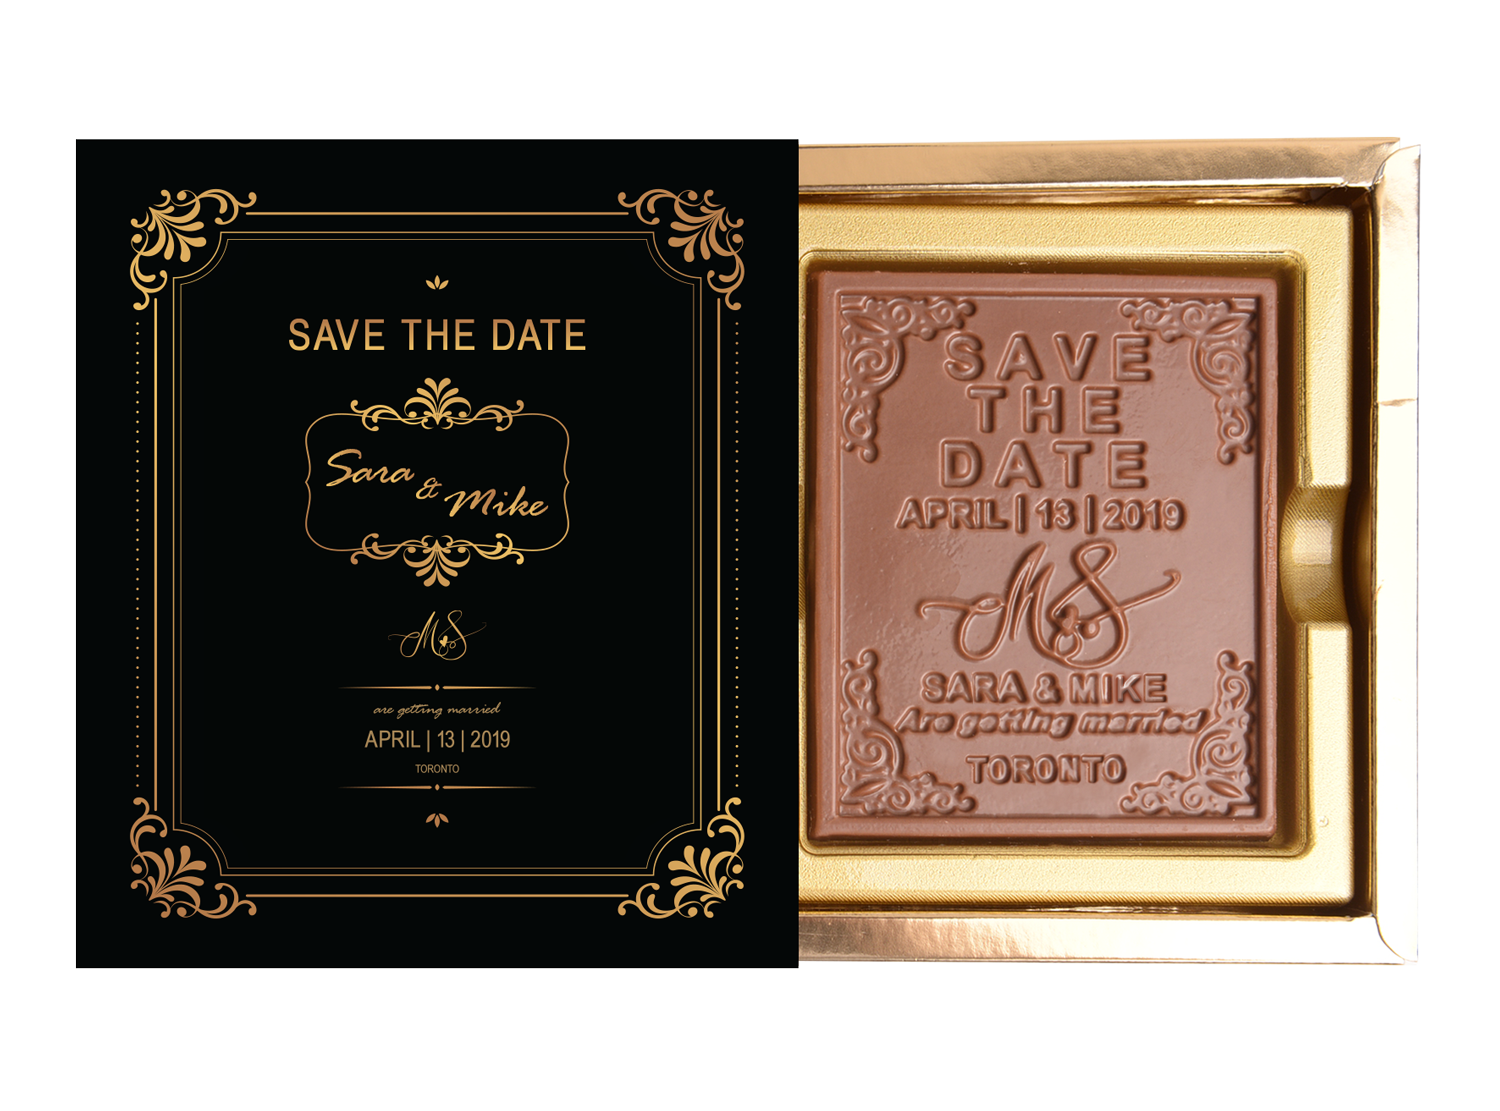 Save The Date Bar, 1 Pc Customized Belgian Chocolate